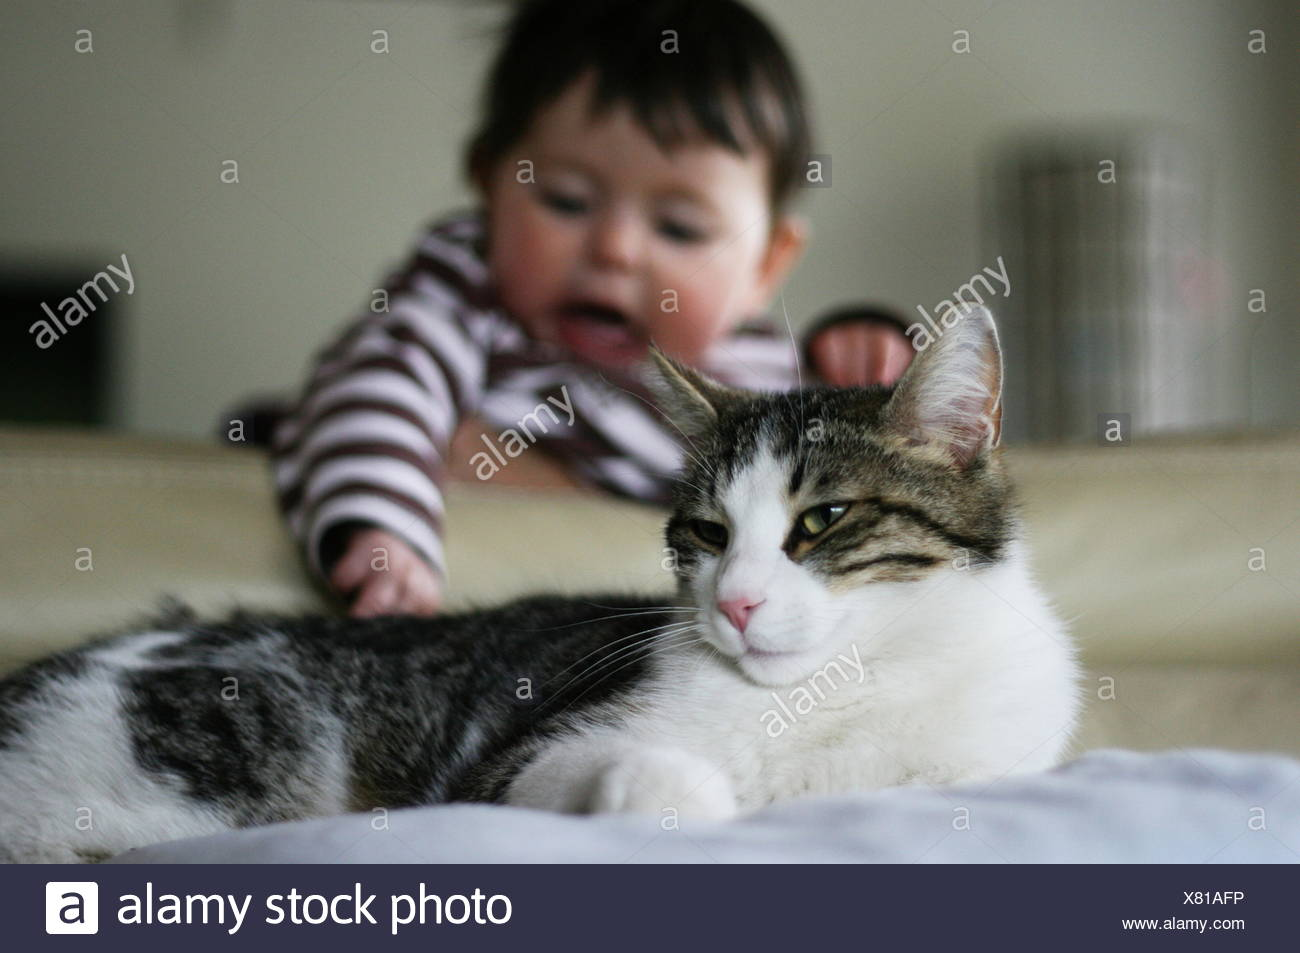 Baby (6-11 months) trying to catch cat tail Stock Photo